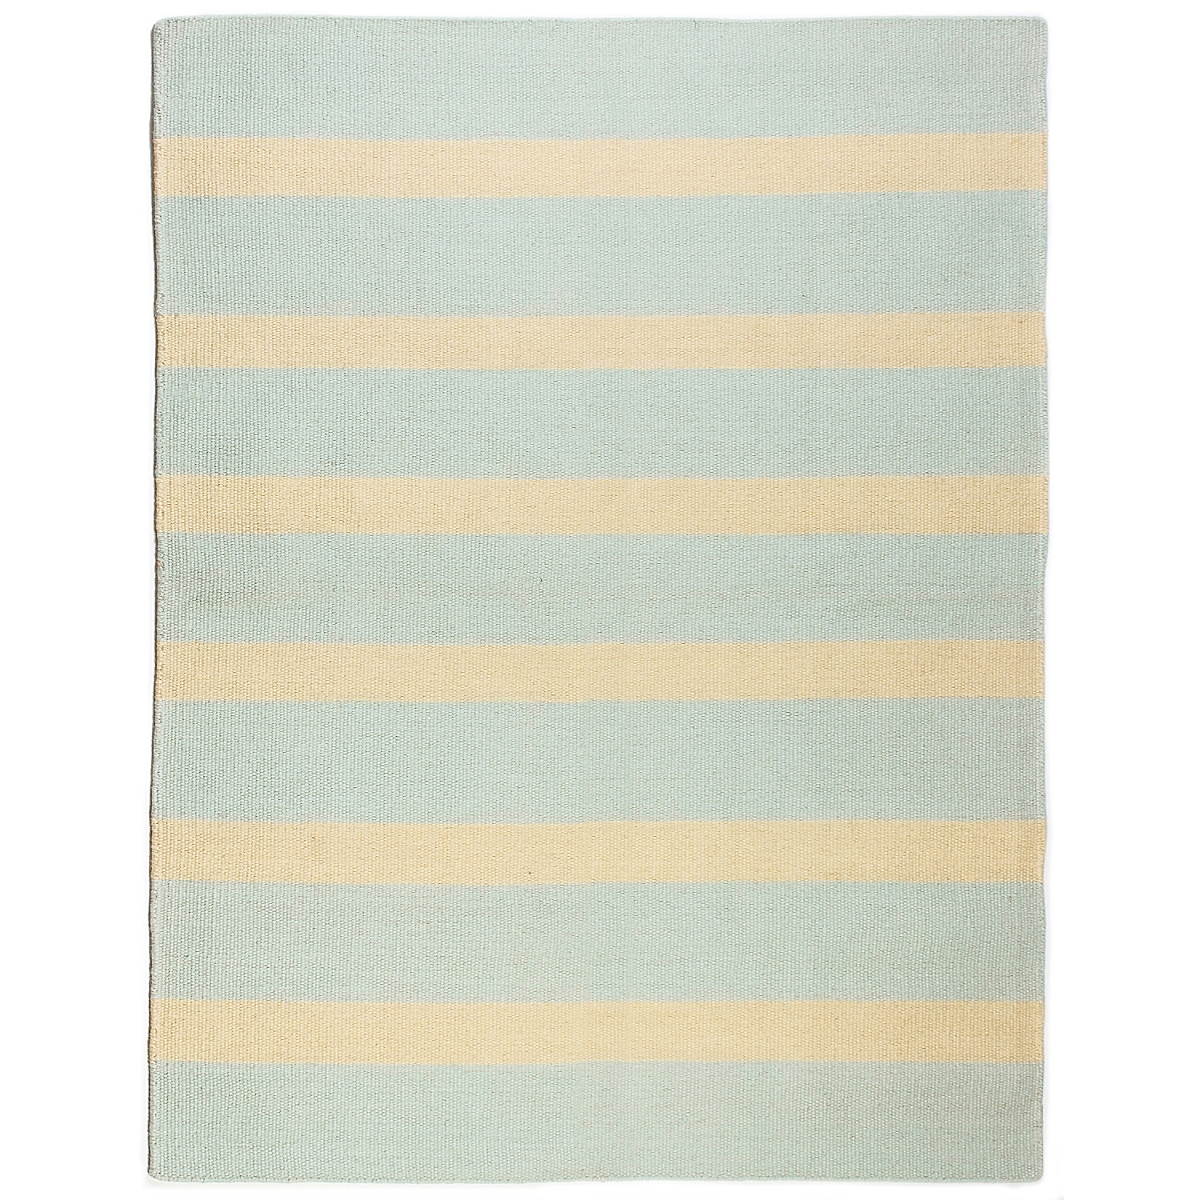 St. George's Reef Wool Berber Striped Rug